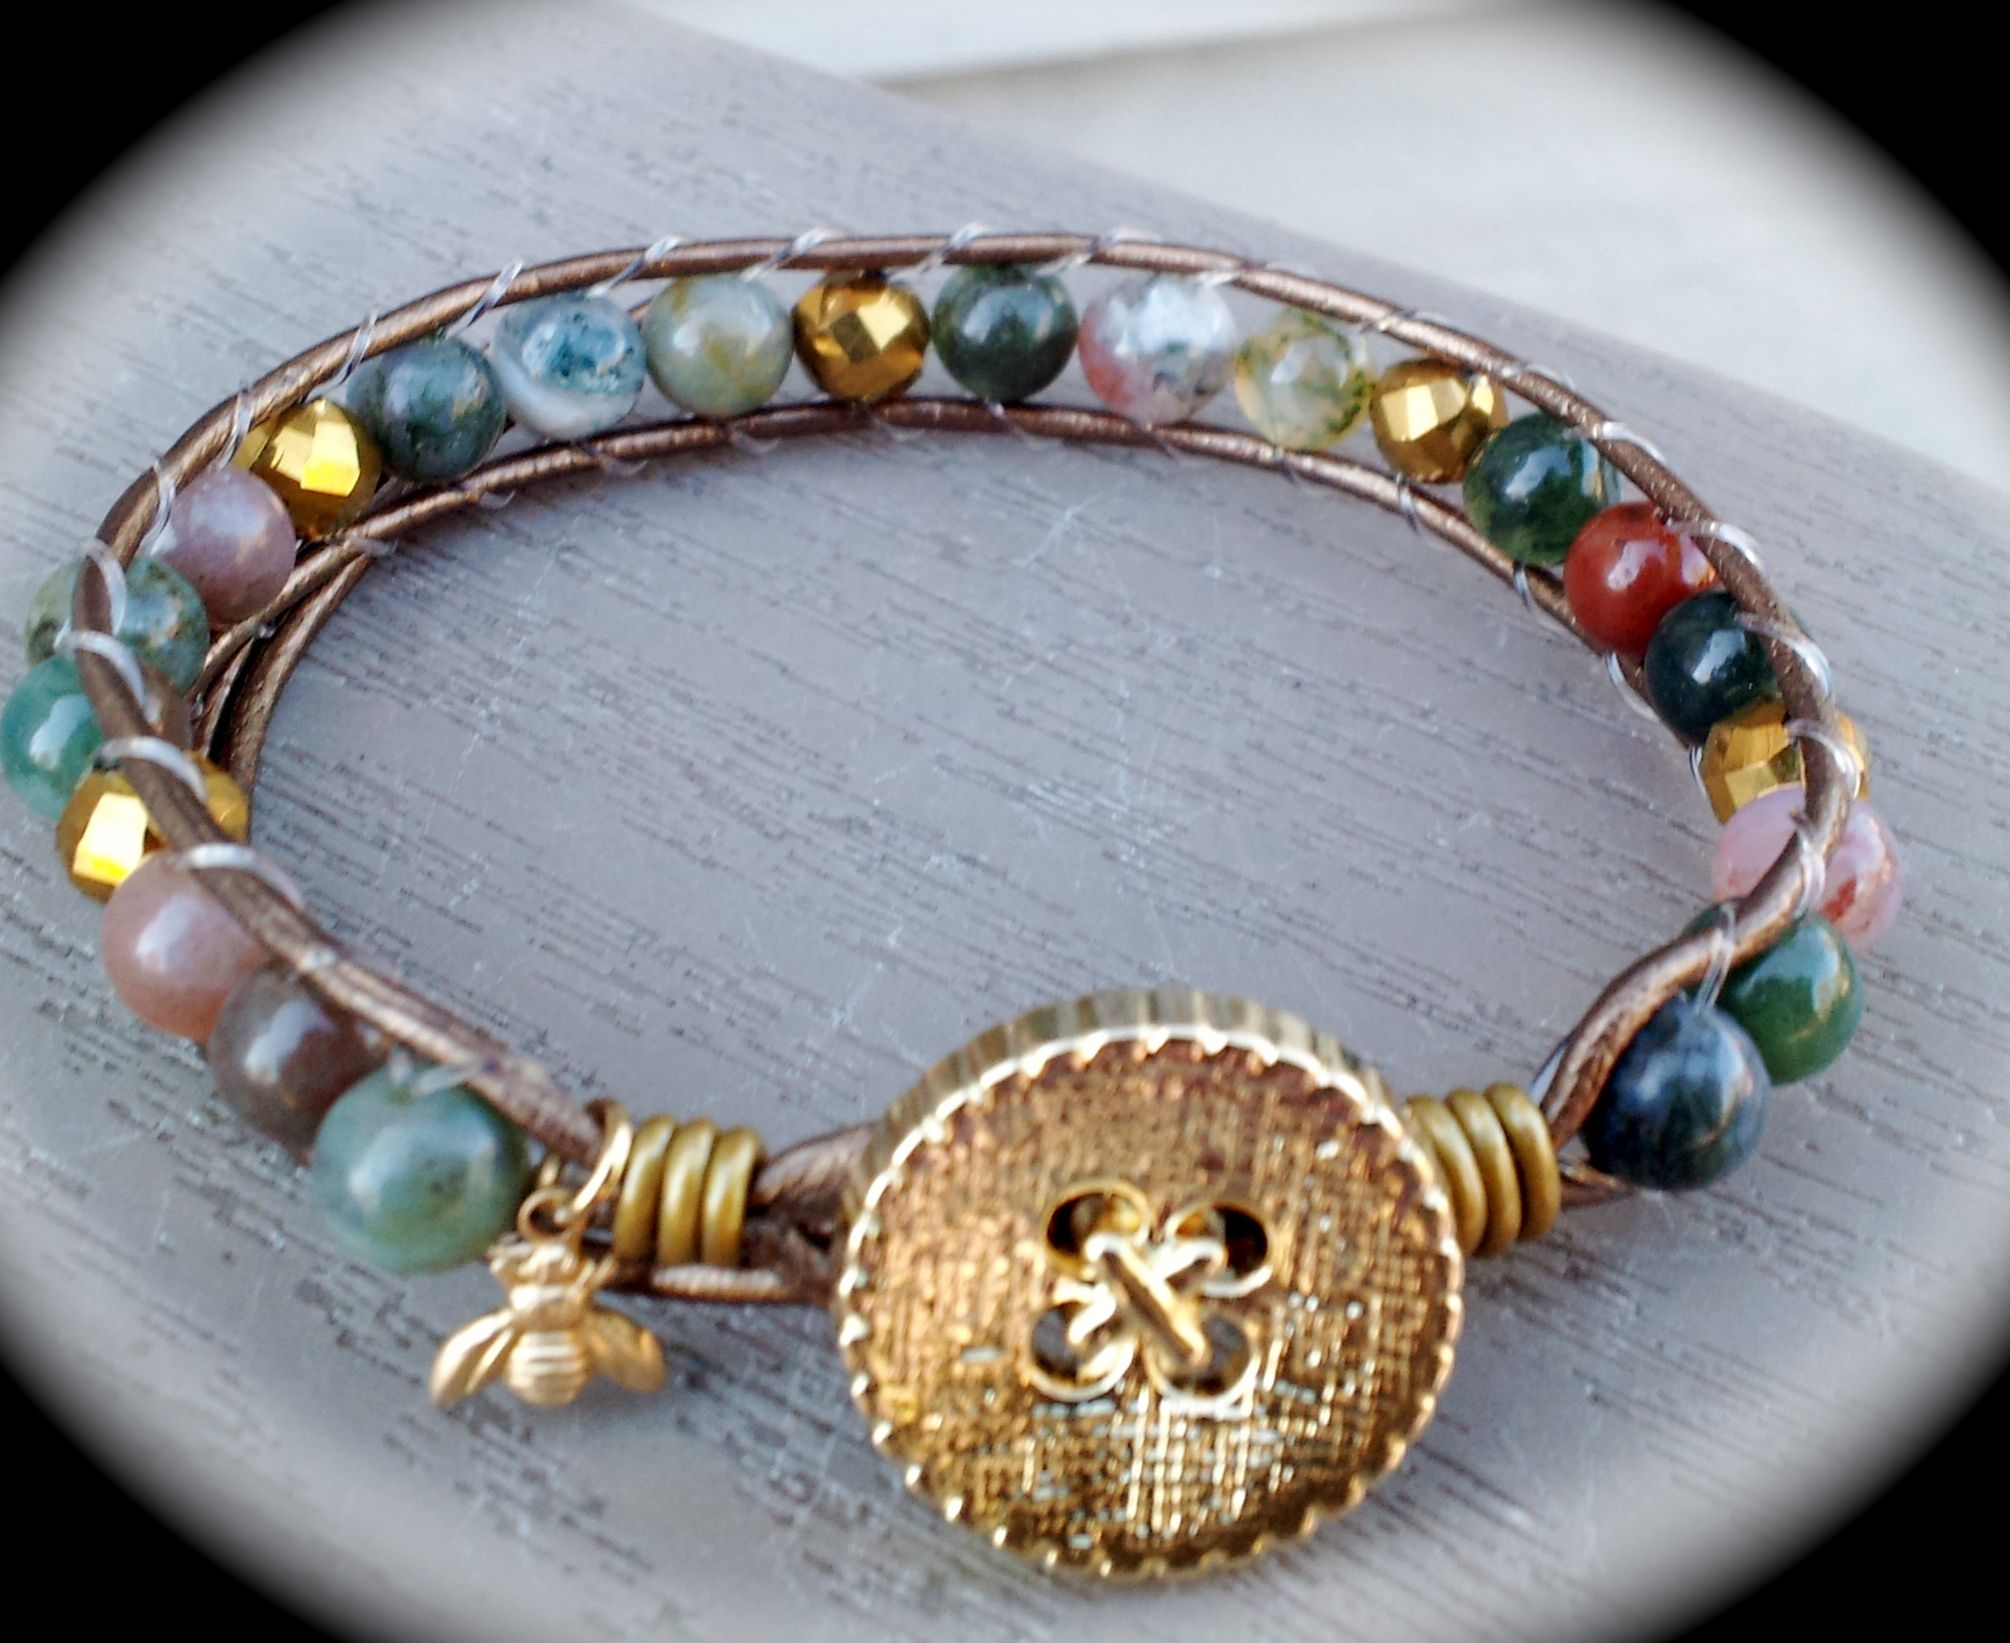 Leather wrap bracelet, made by Dizzy Bees